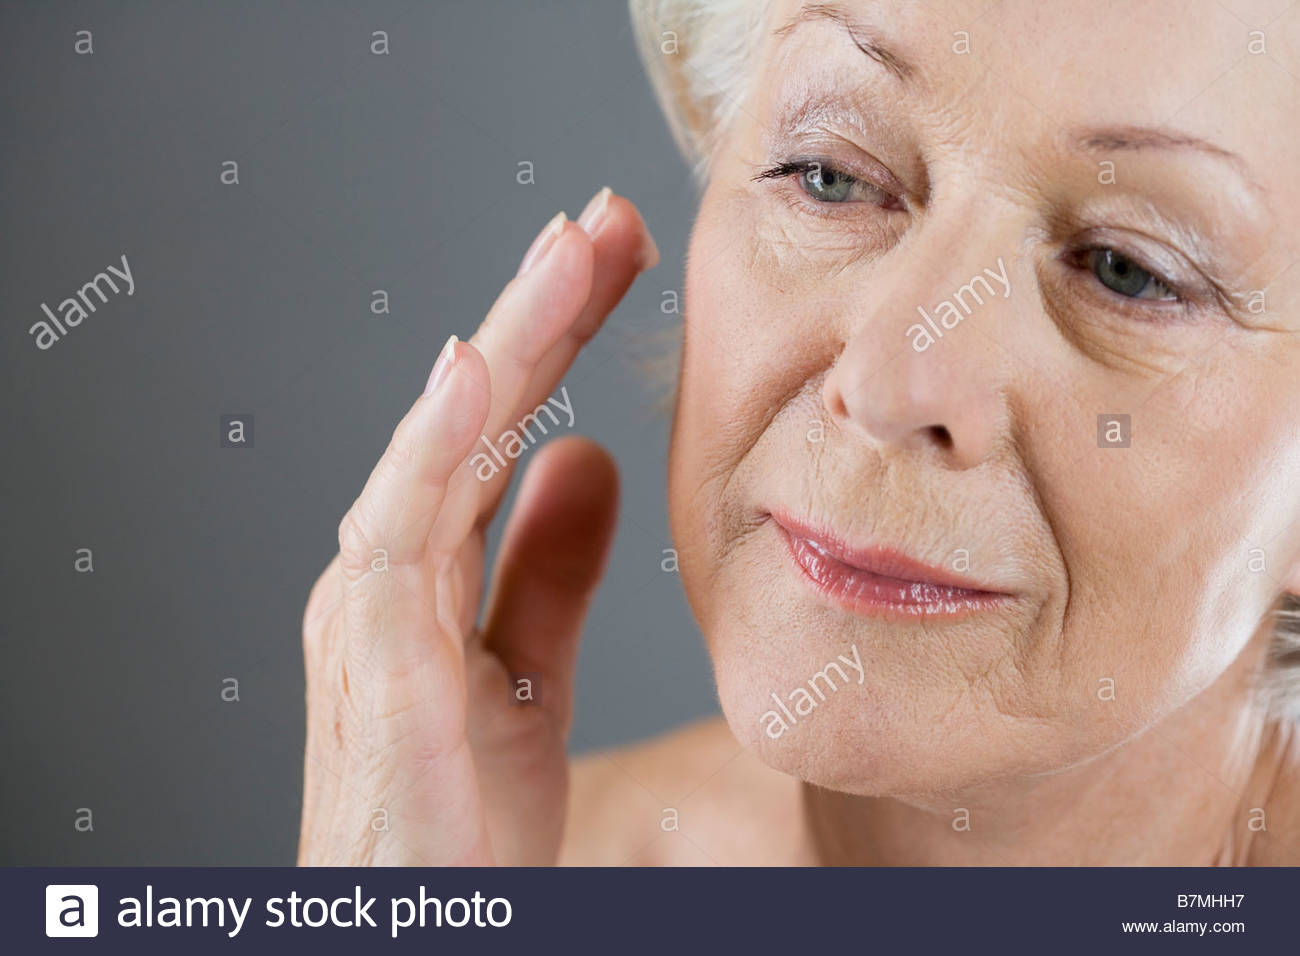 A senior woman applying moisturiser to her face - Stock Image